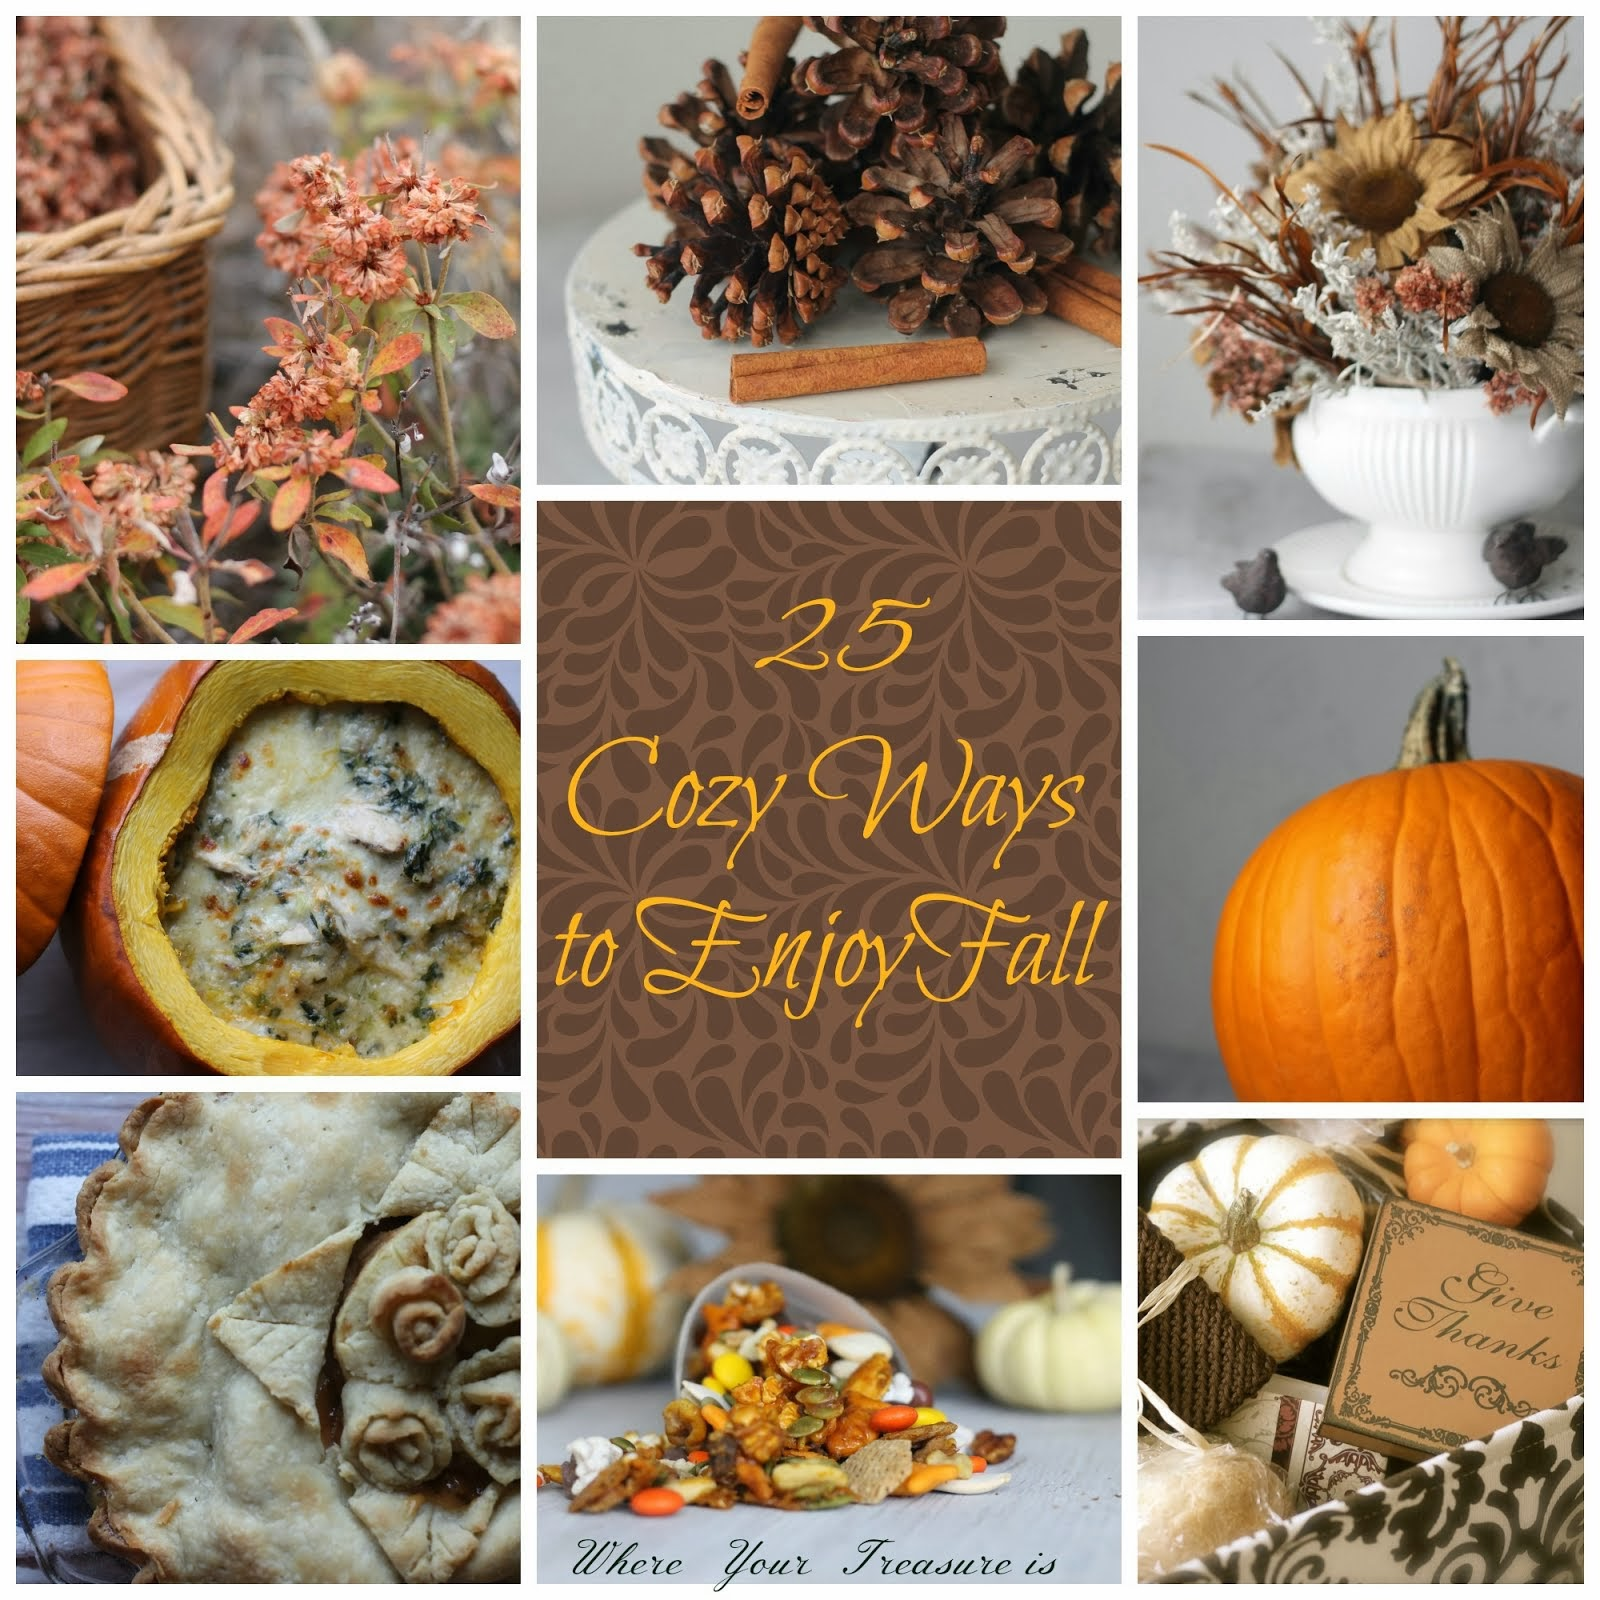 25 Cozy Ways to Enjoy Fall